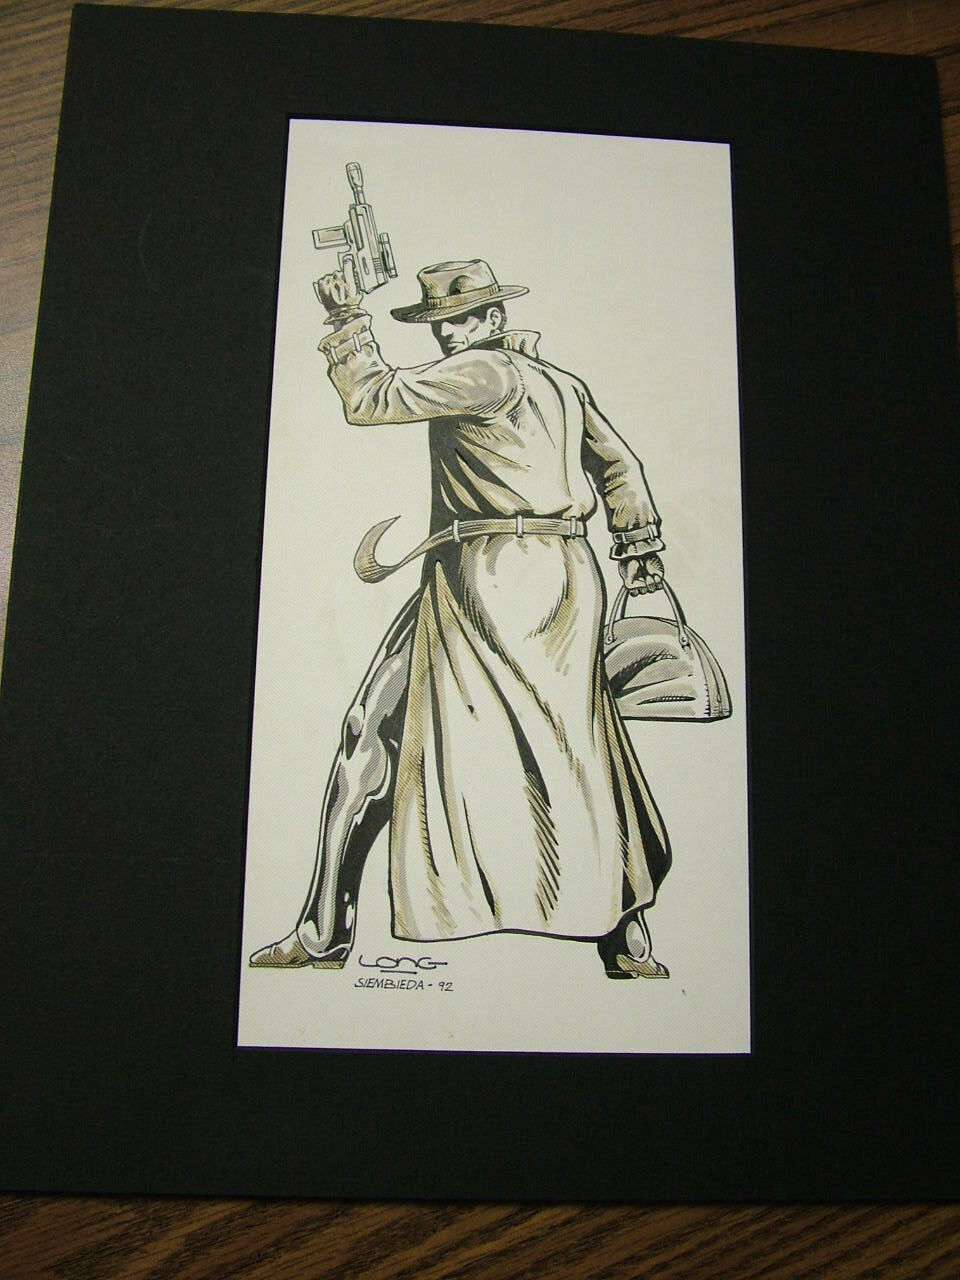 Villains Unlimited  Kevin Long & Siembieda original art, matted - signed 5